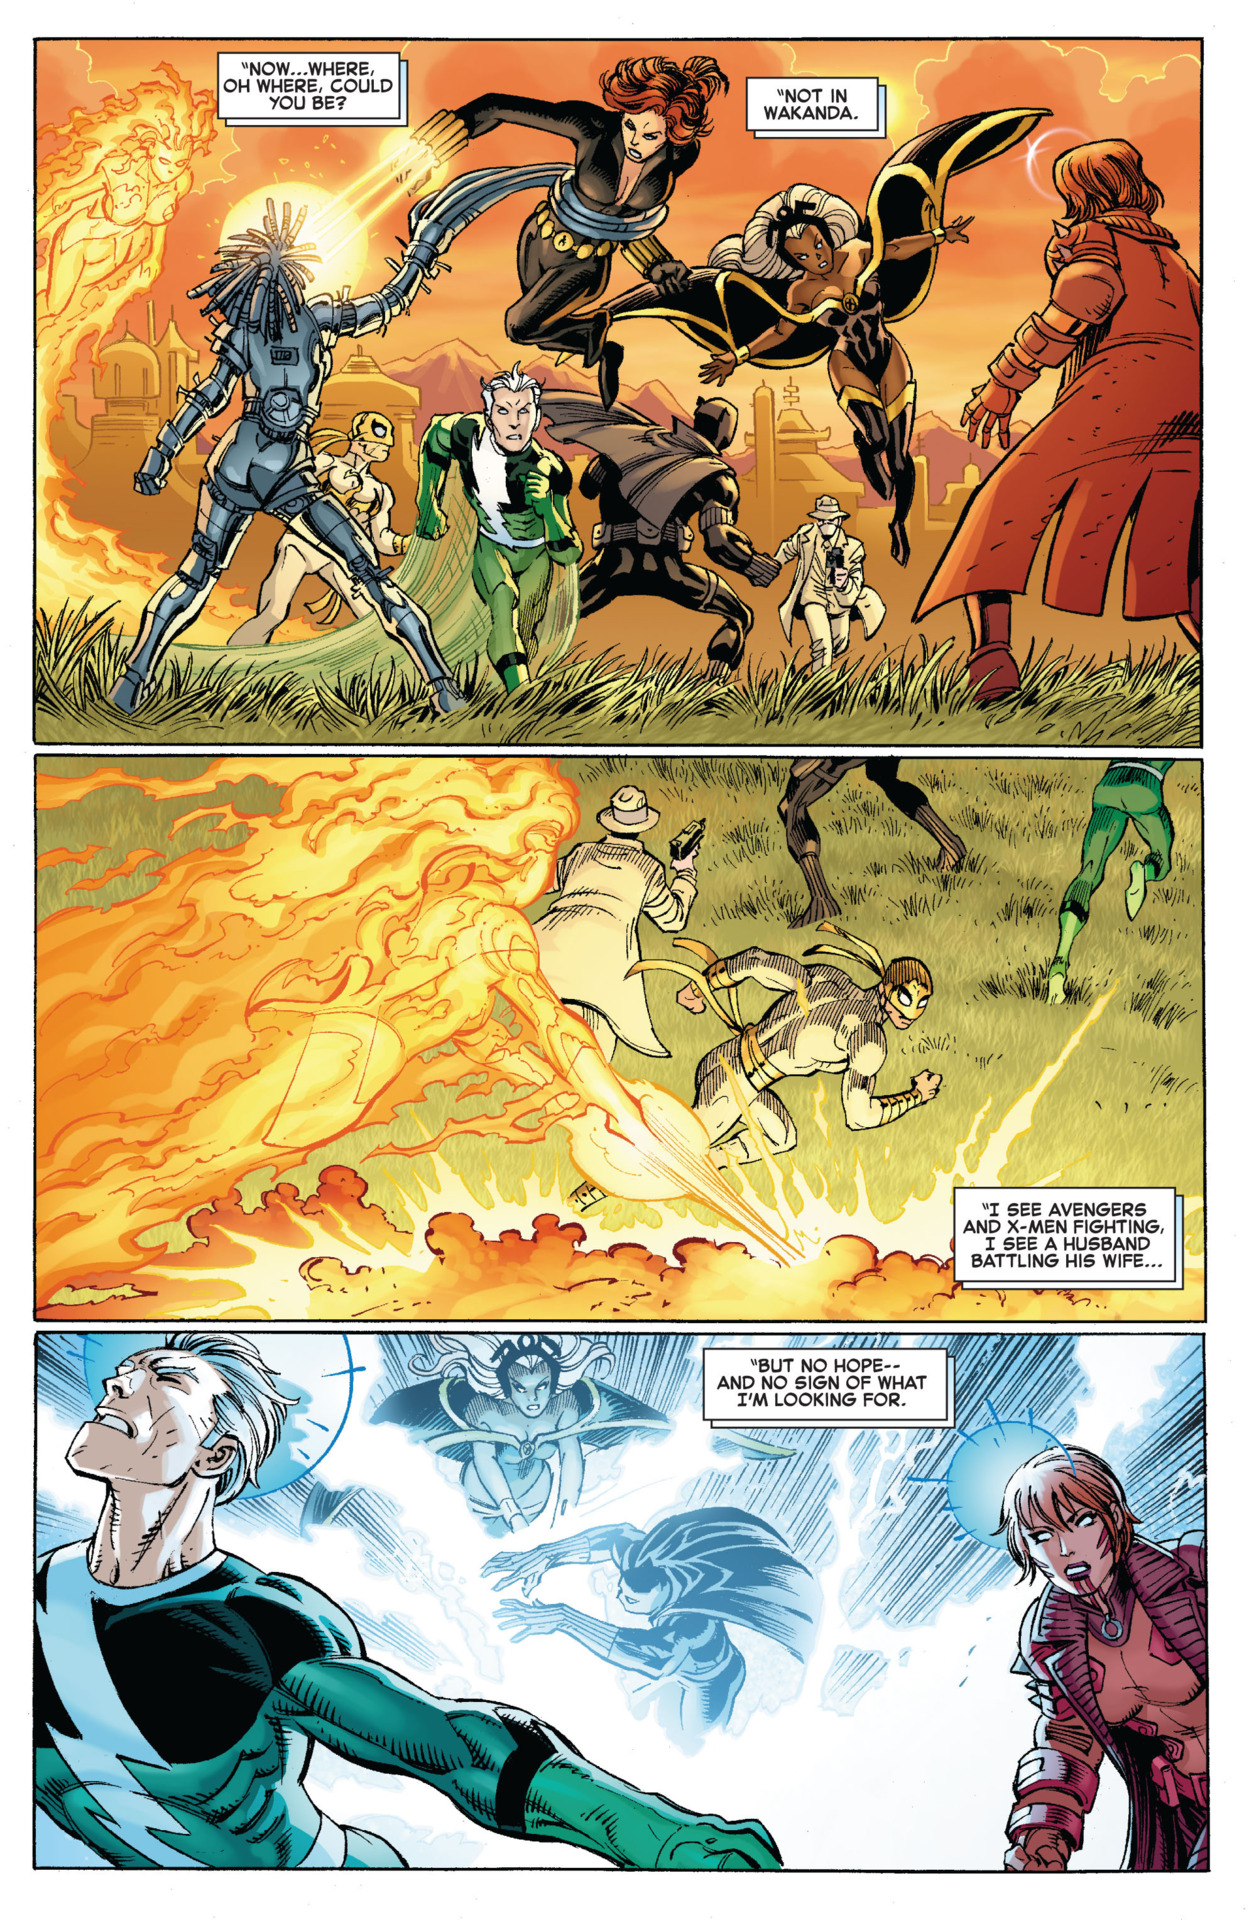 KO's Quicksilver with a mind blast before he can blitz her Avengers vs X-Men #2